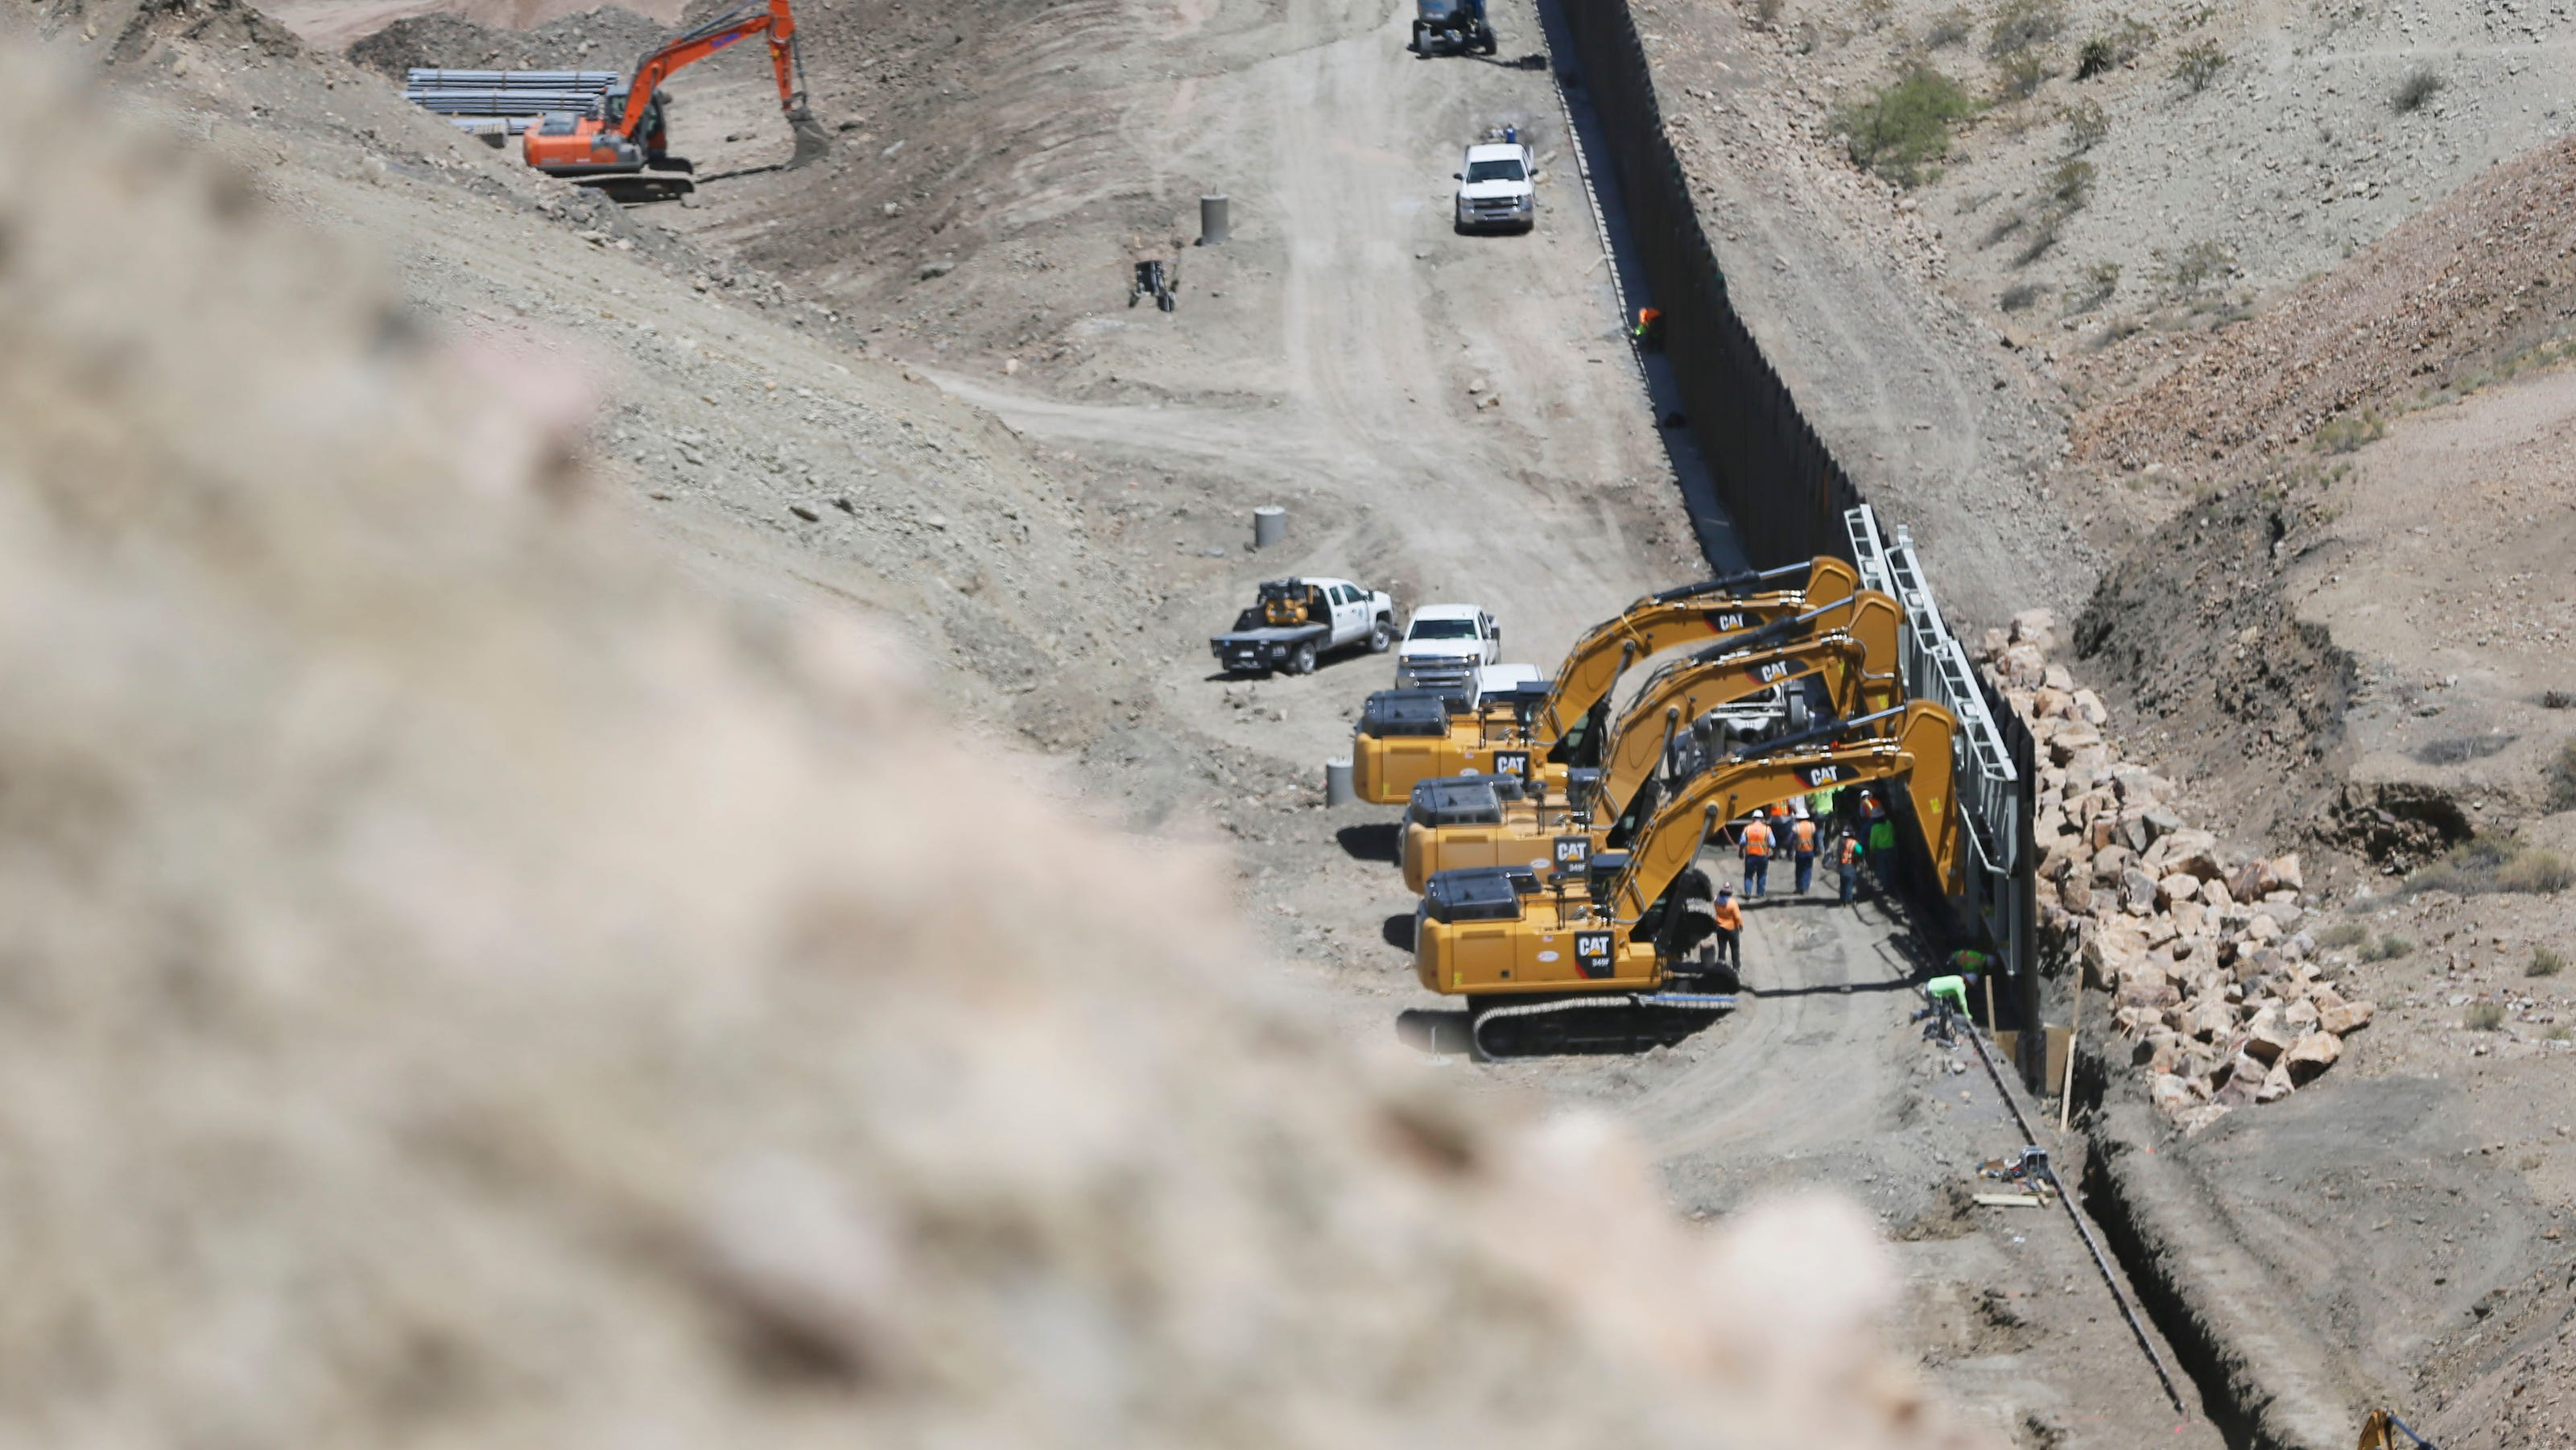 Privately funded border wall built at El Paso: 'Why wouldn't we allow it?' land owner asks